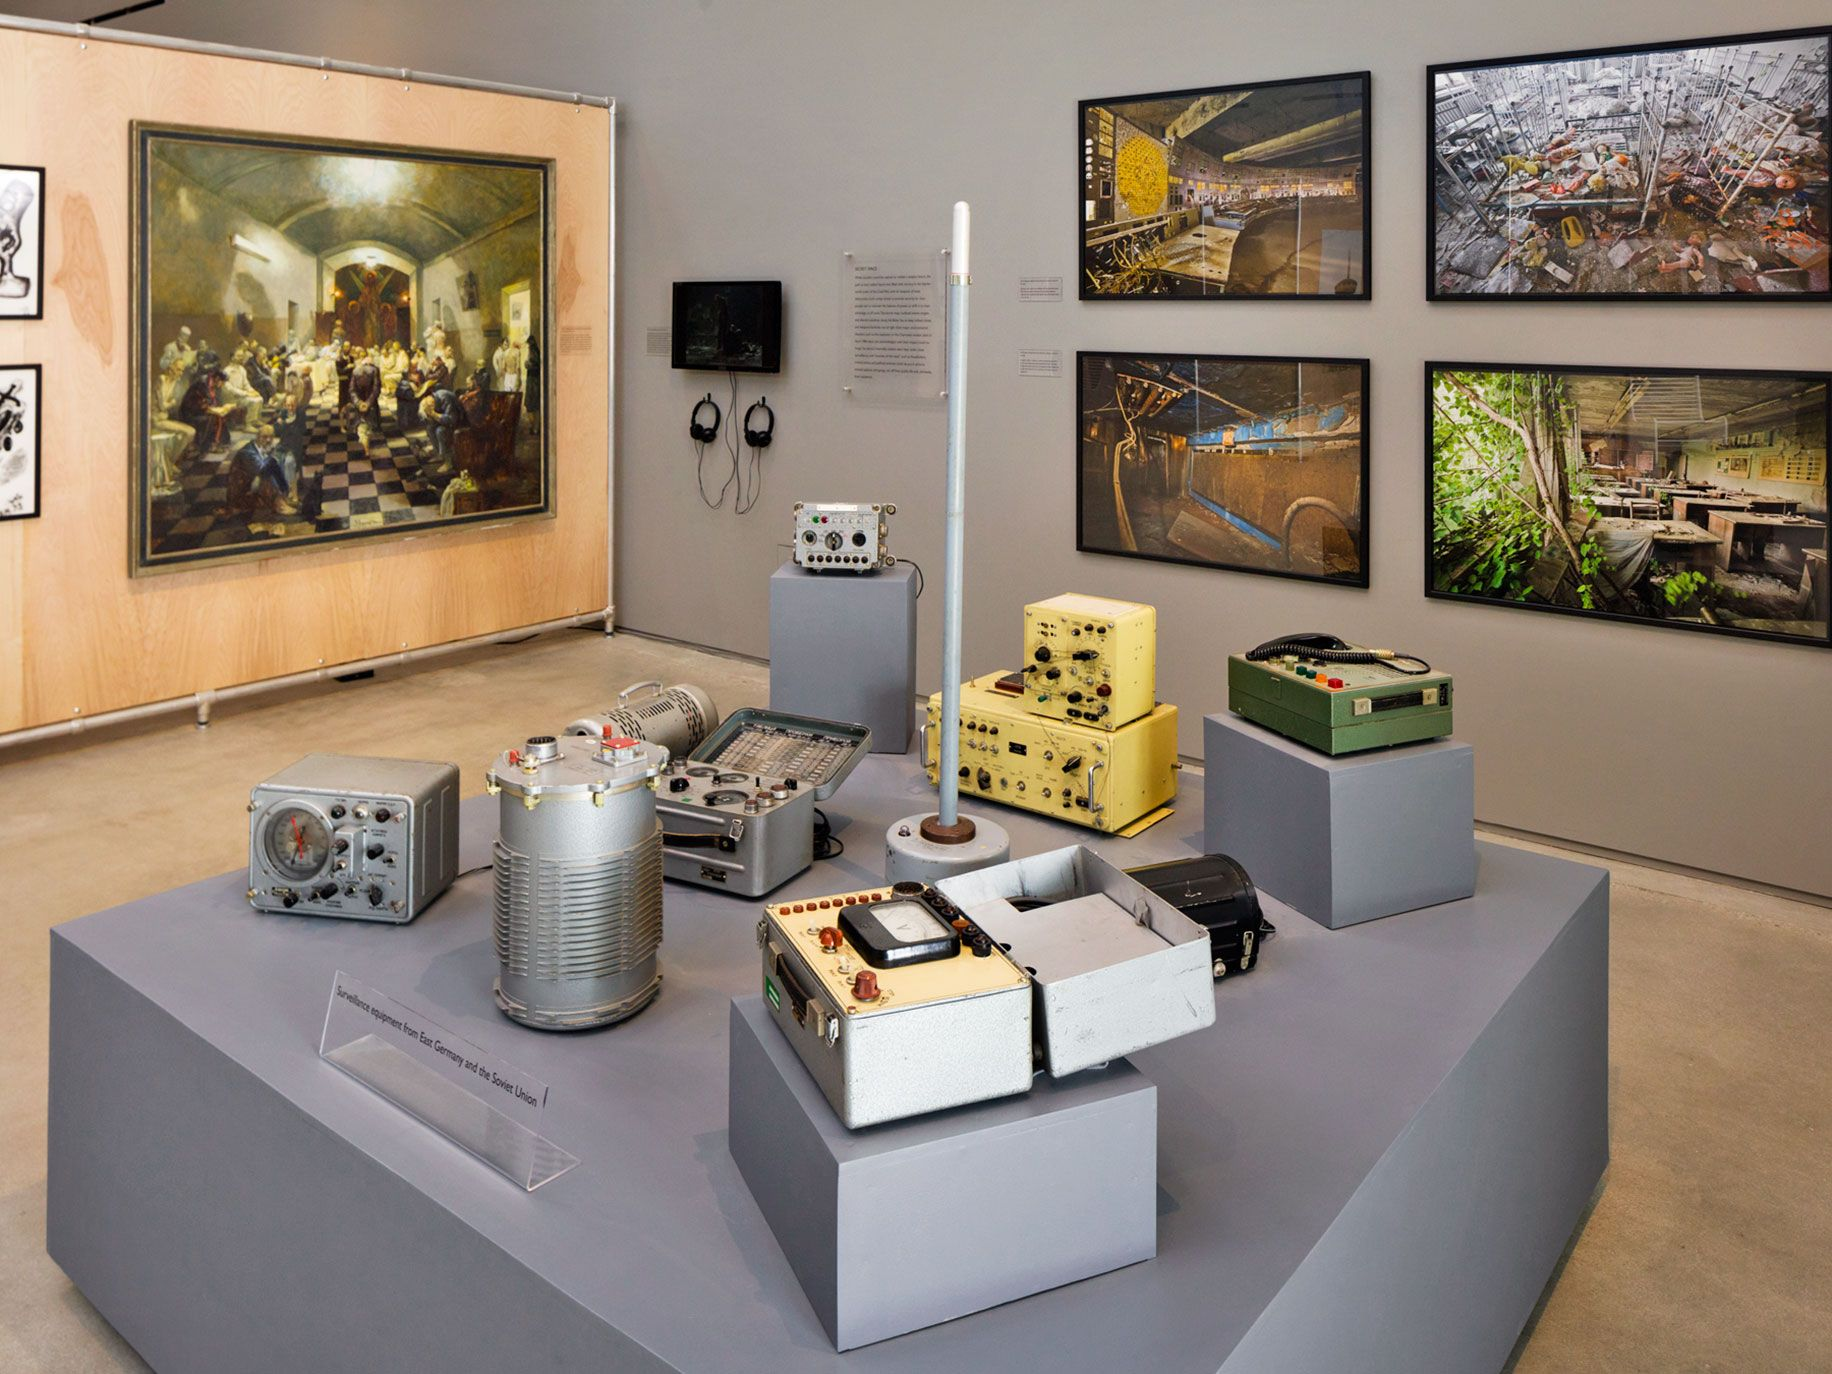 The Wende Museum's exhibits include Cold War surveillance equipment, artwork and photos.